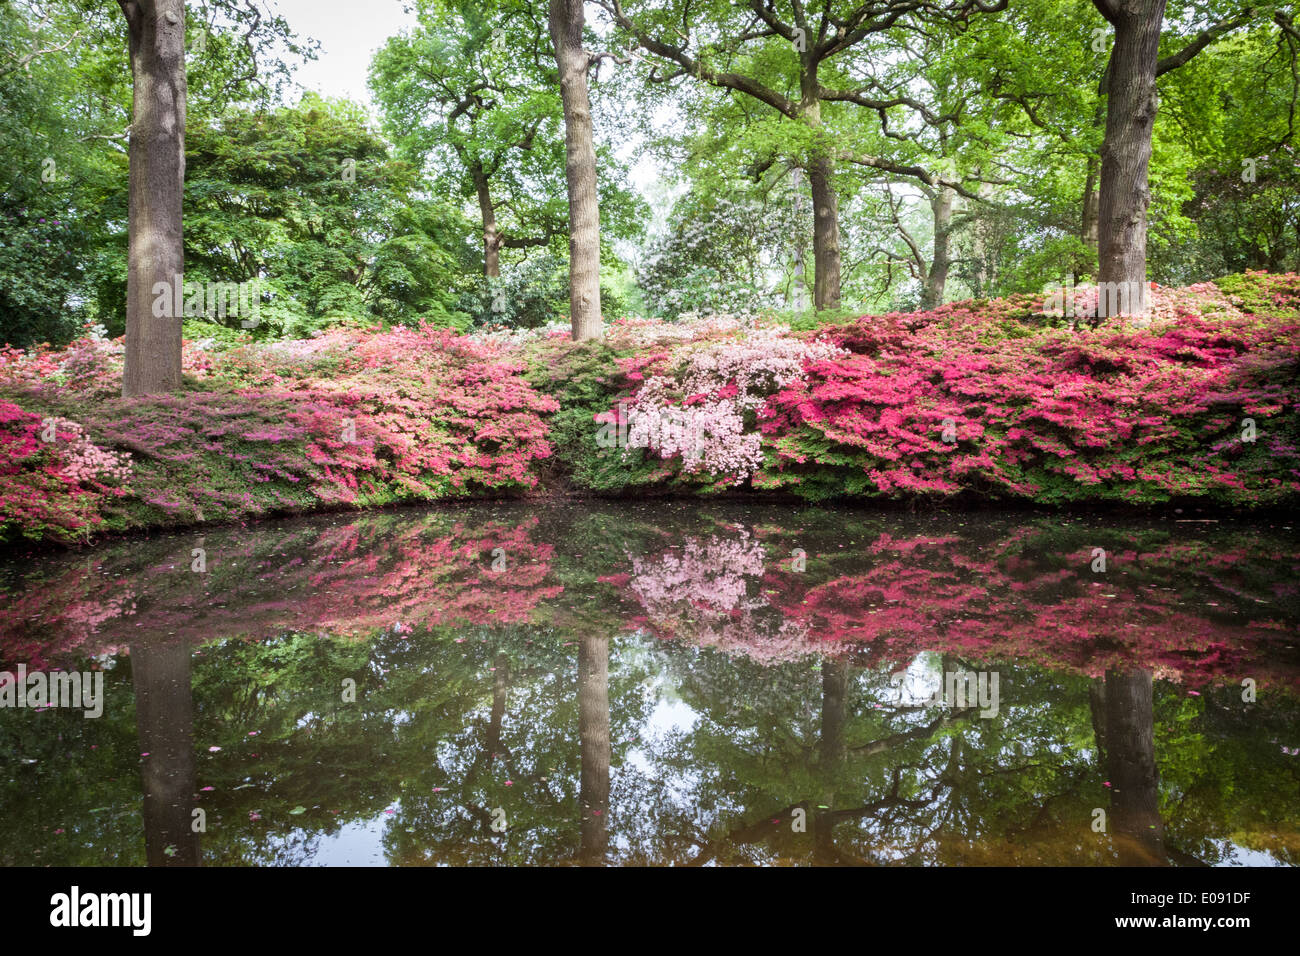 One of the ponds in the isabella plantation richmond park stock image